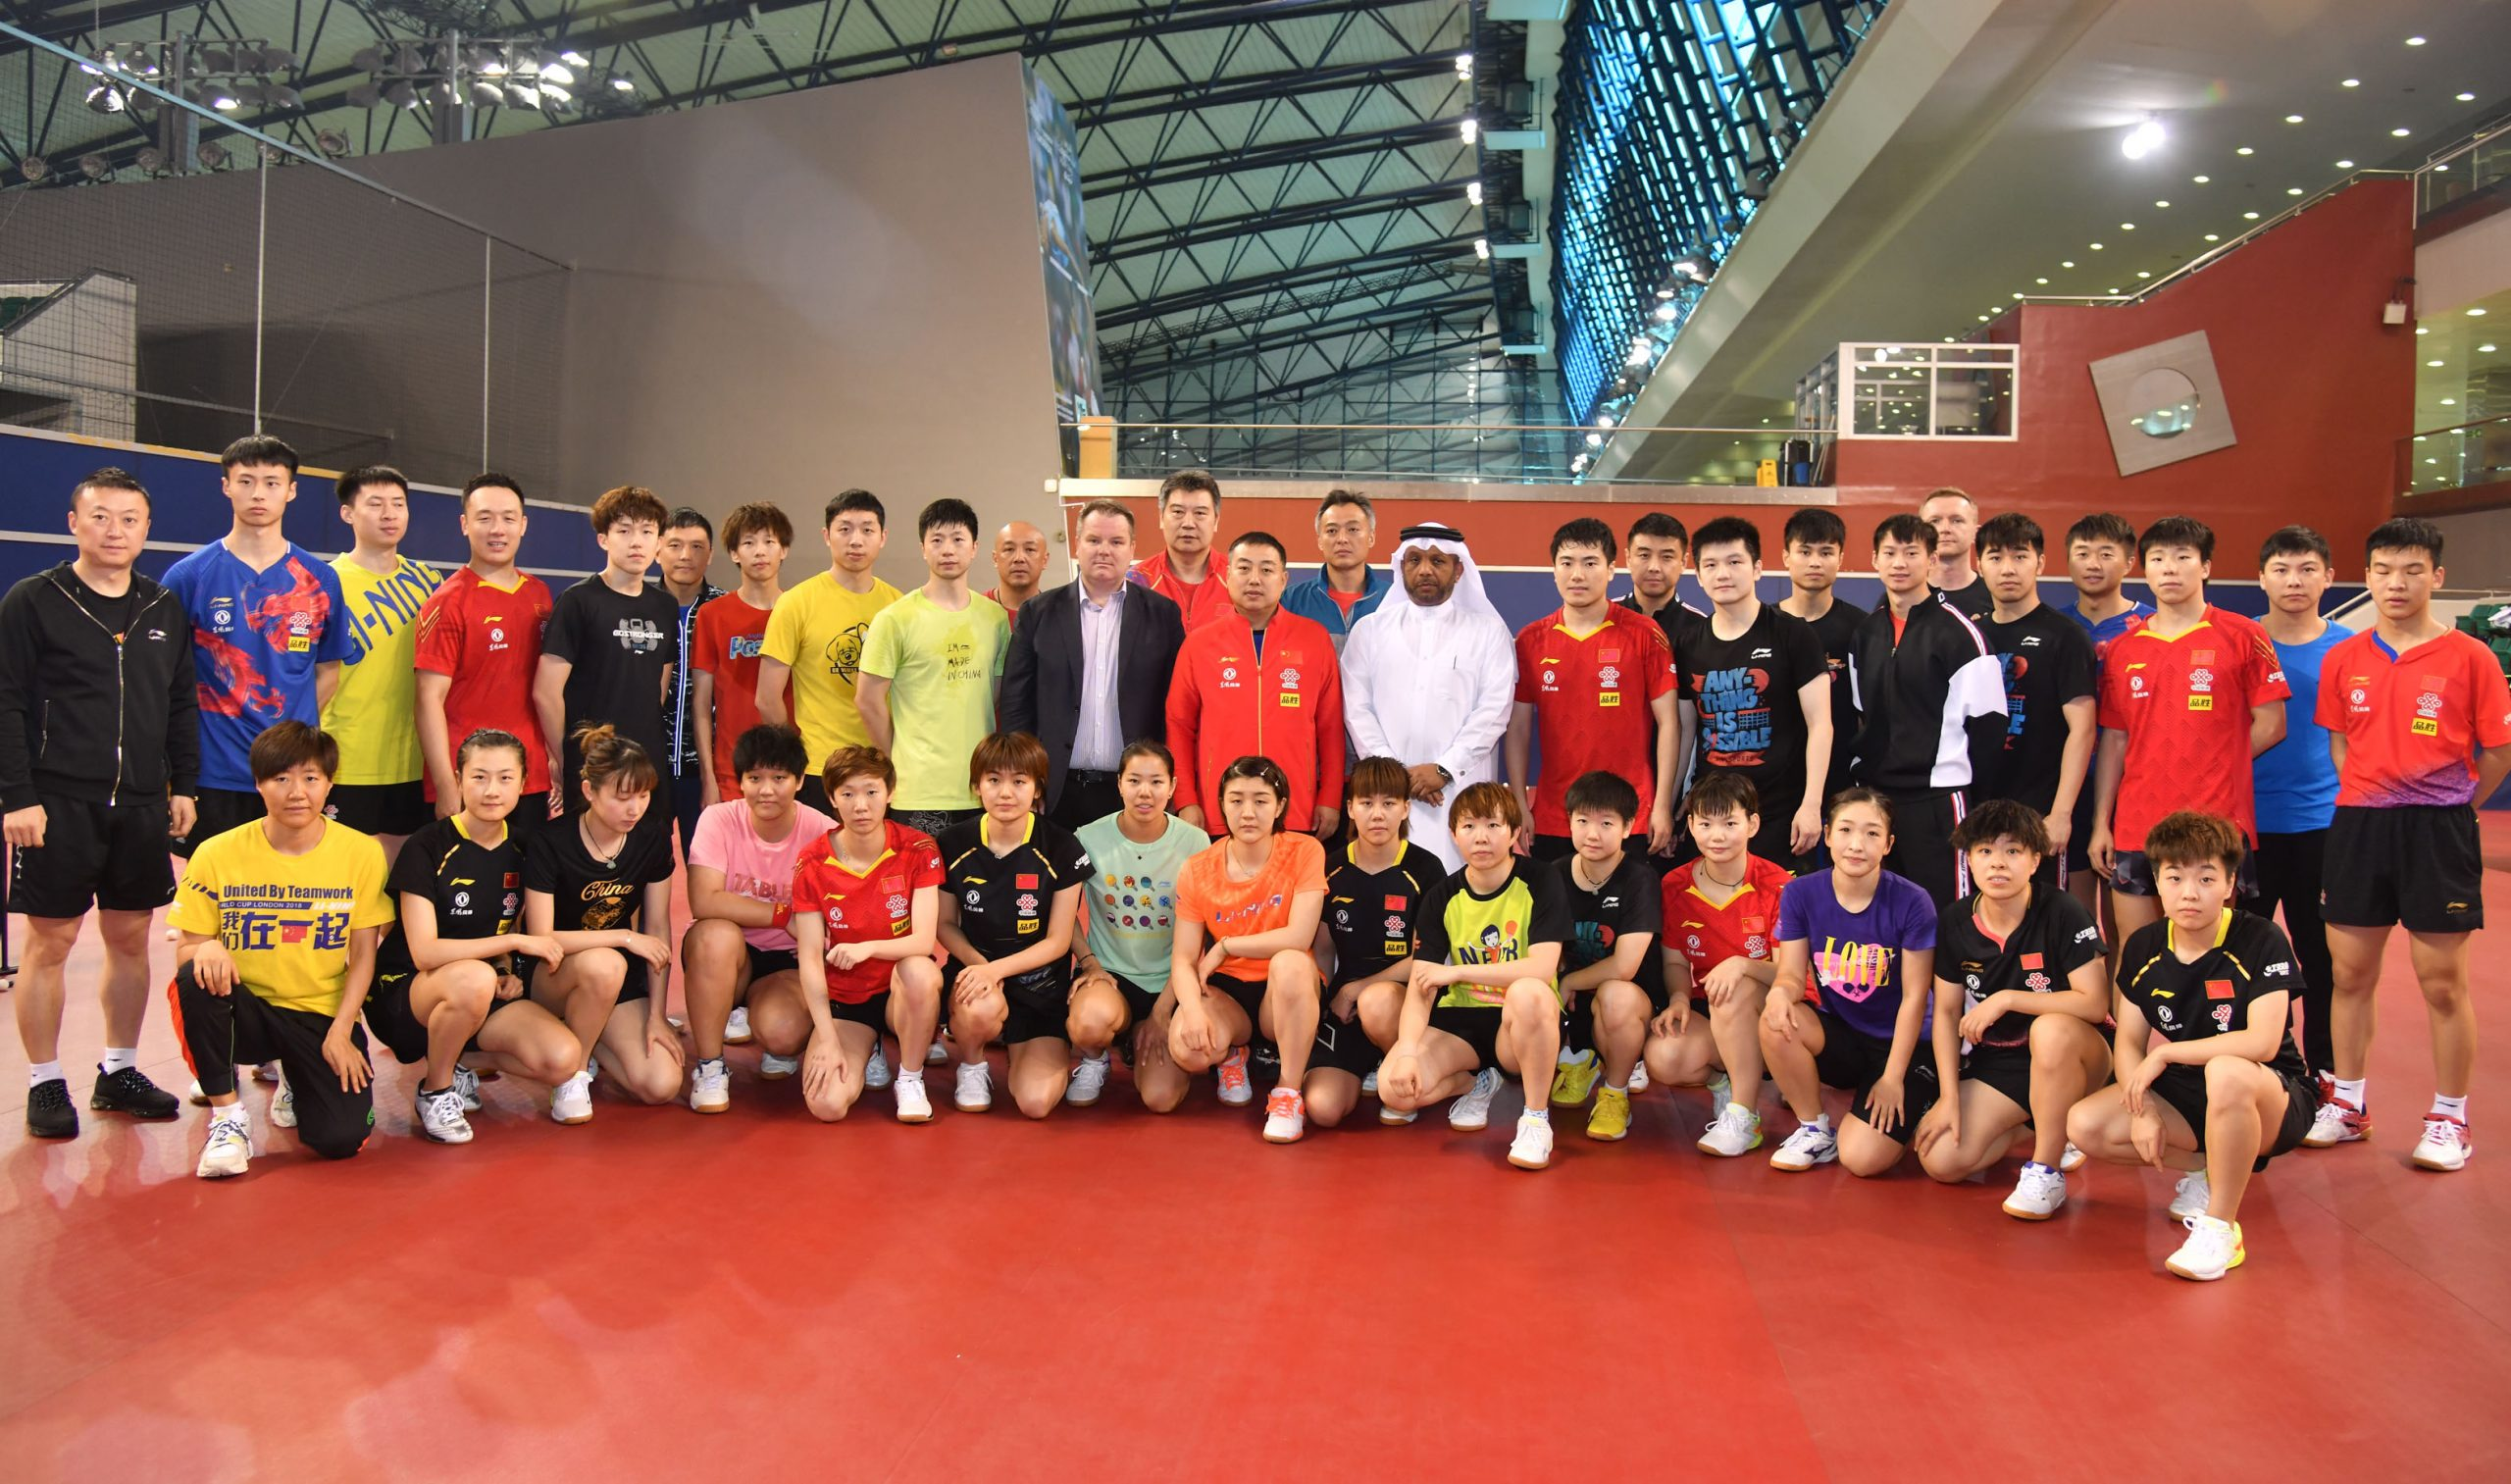 ITTF providing full assistance to Chinese National Team training in Qatar